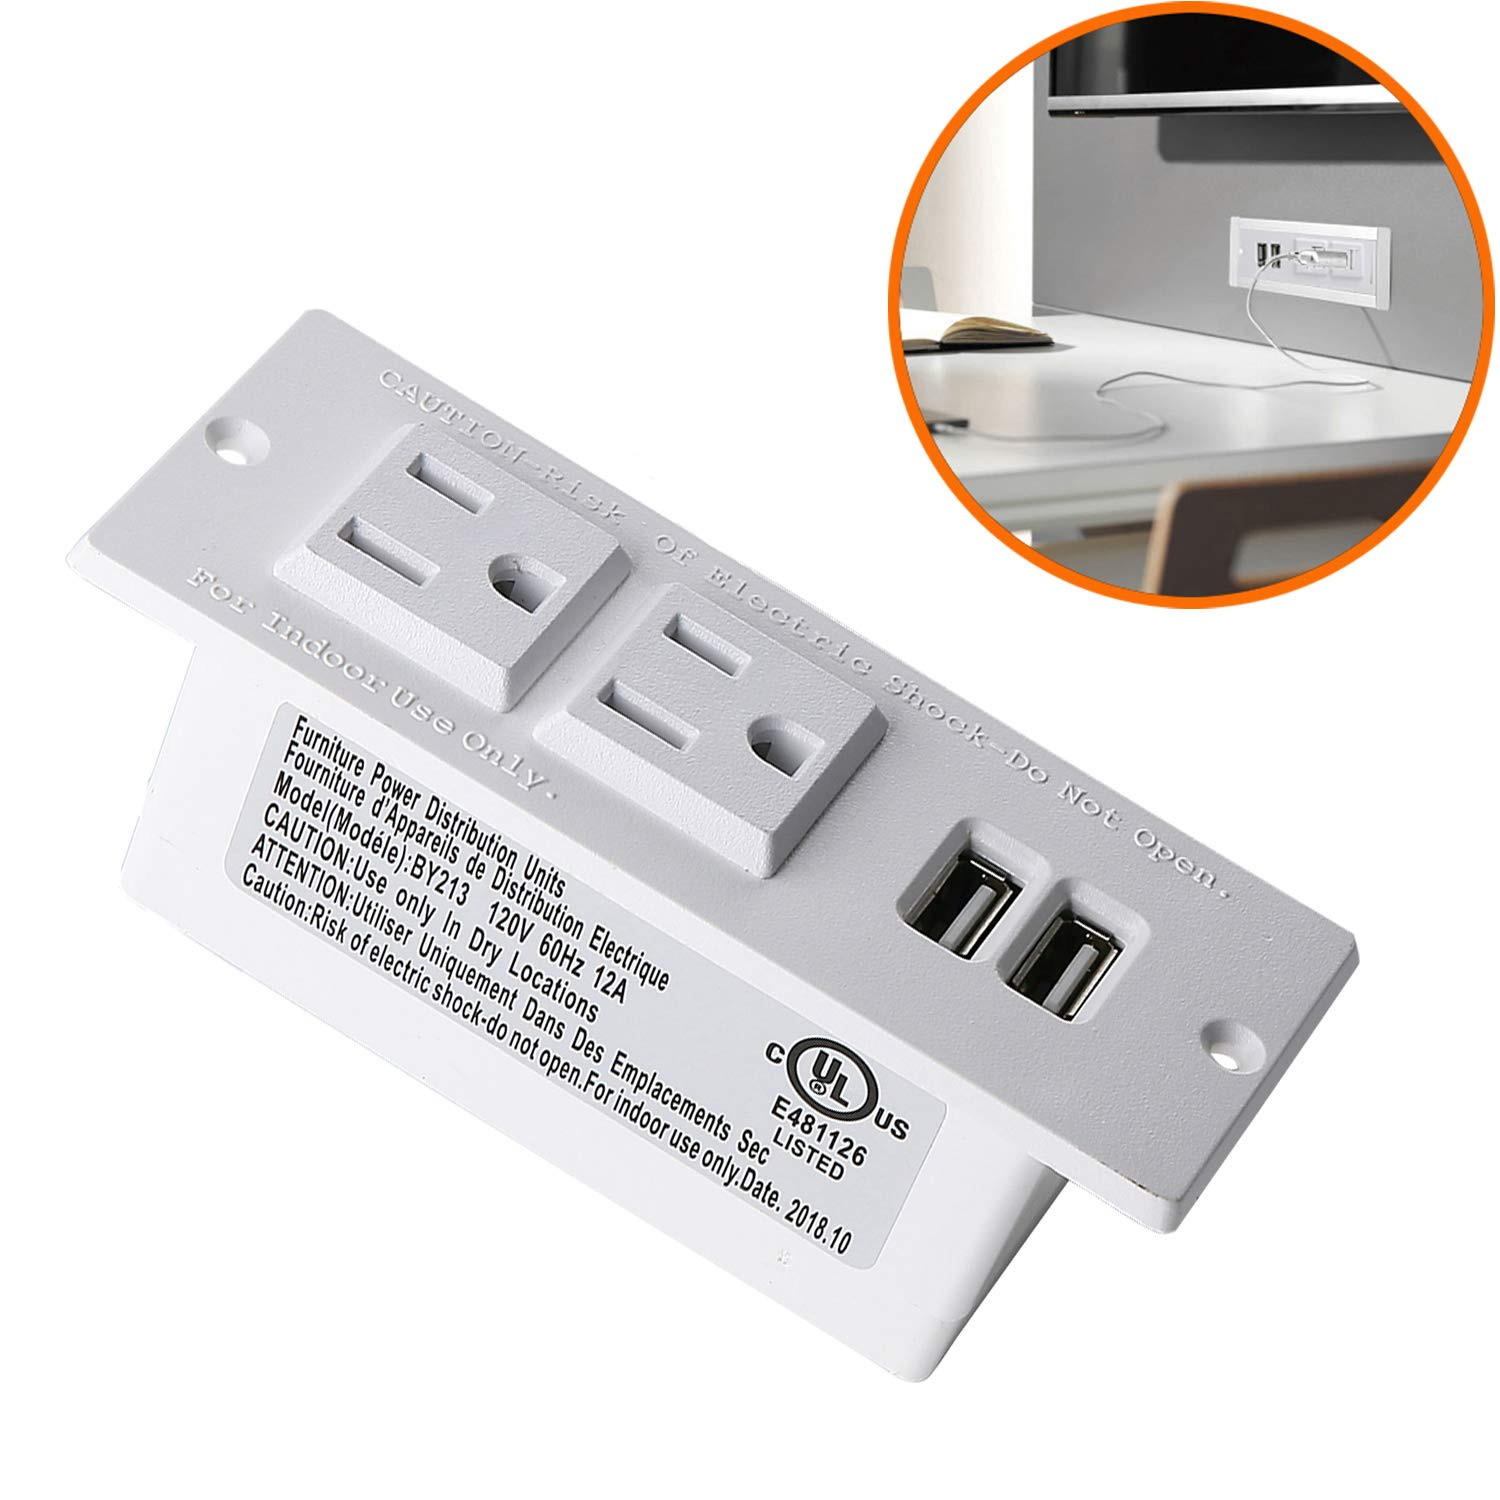 Desktop Power Strip with USB for Furniture, Desk Recessed Power Grommet Socket, 2 AC Outlets & 2 USB Ports & 6.56ft Power Cord (White)